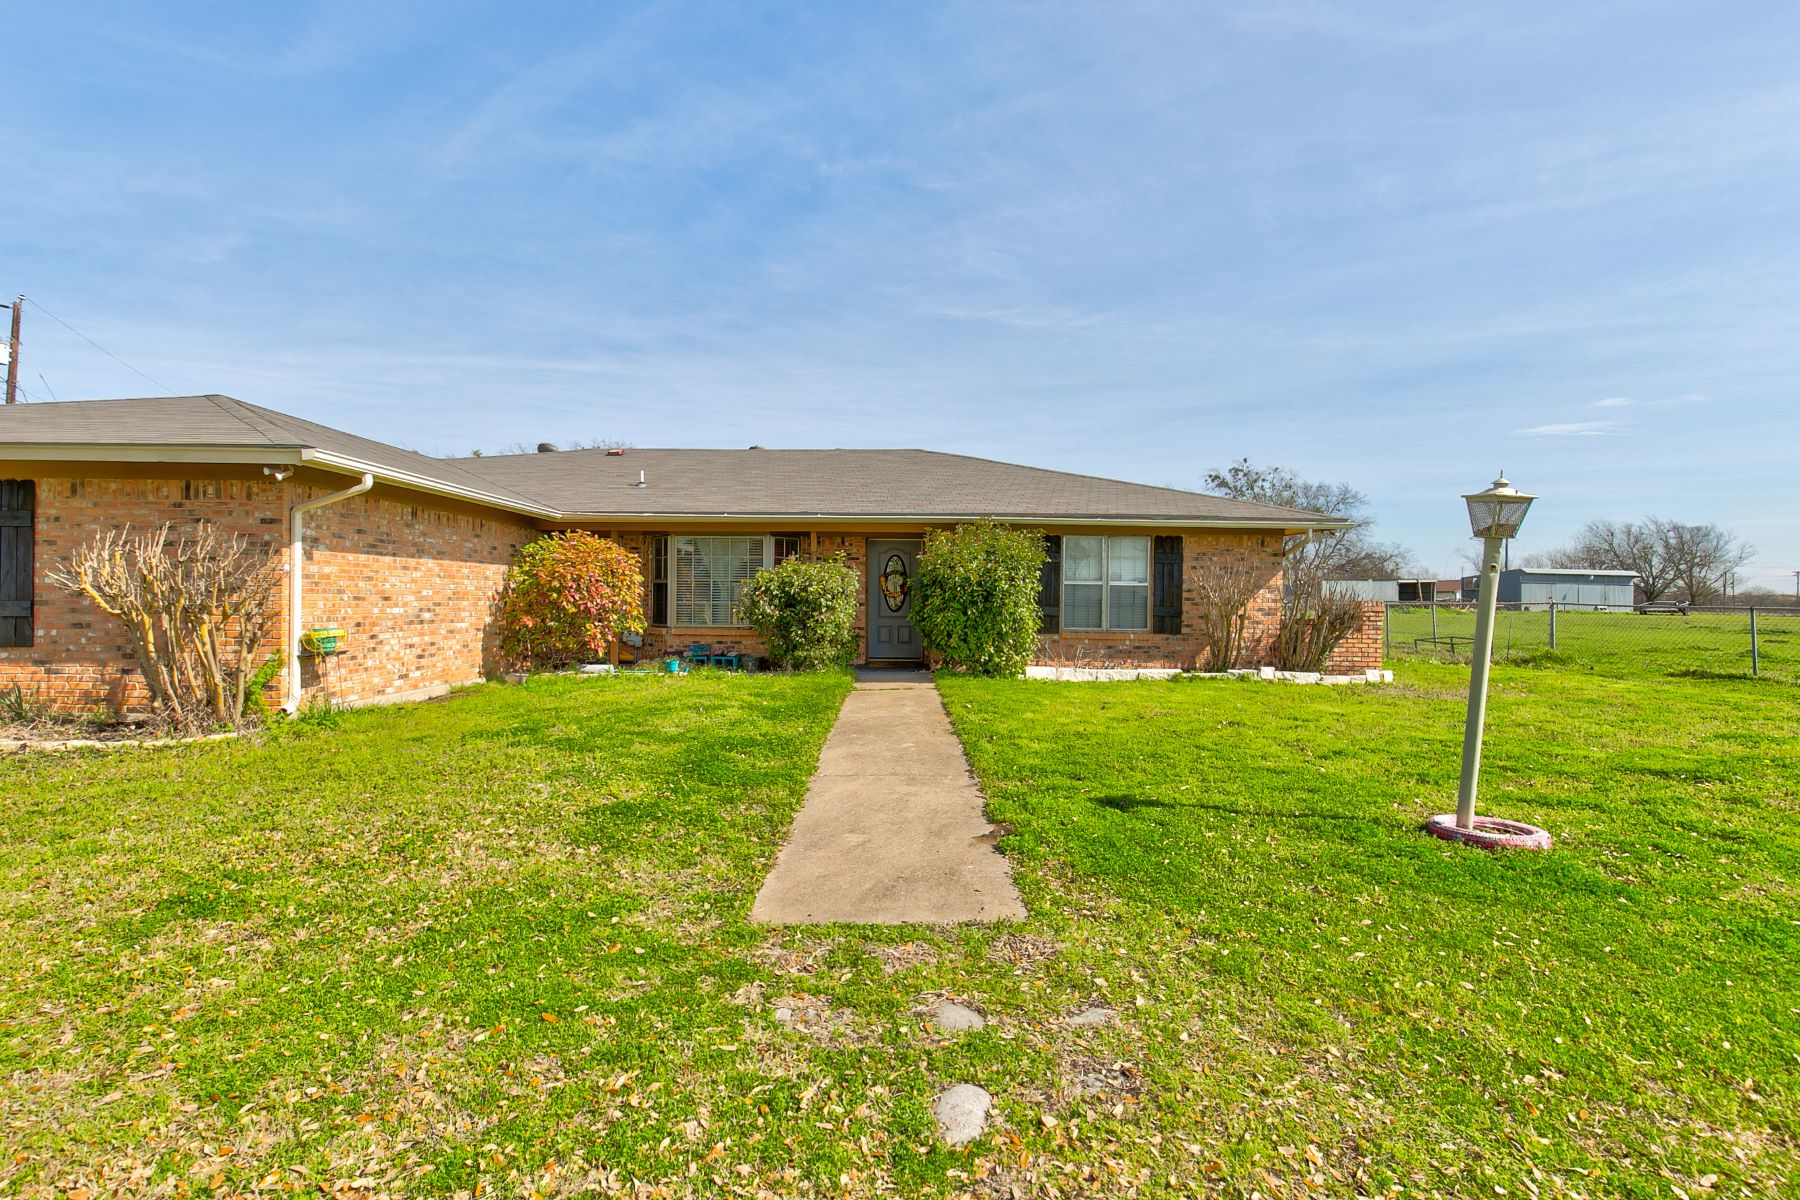 Single Family Homes for Sale at 605 Reynolds Road Godley, Texas 76044 United States